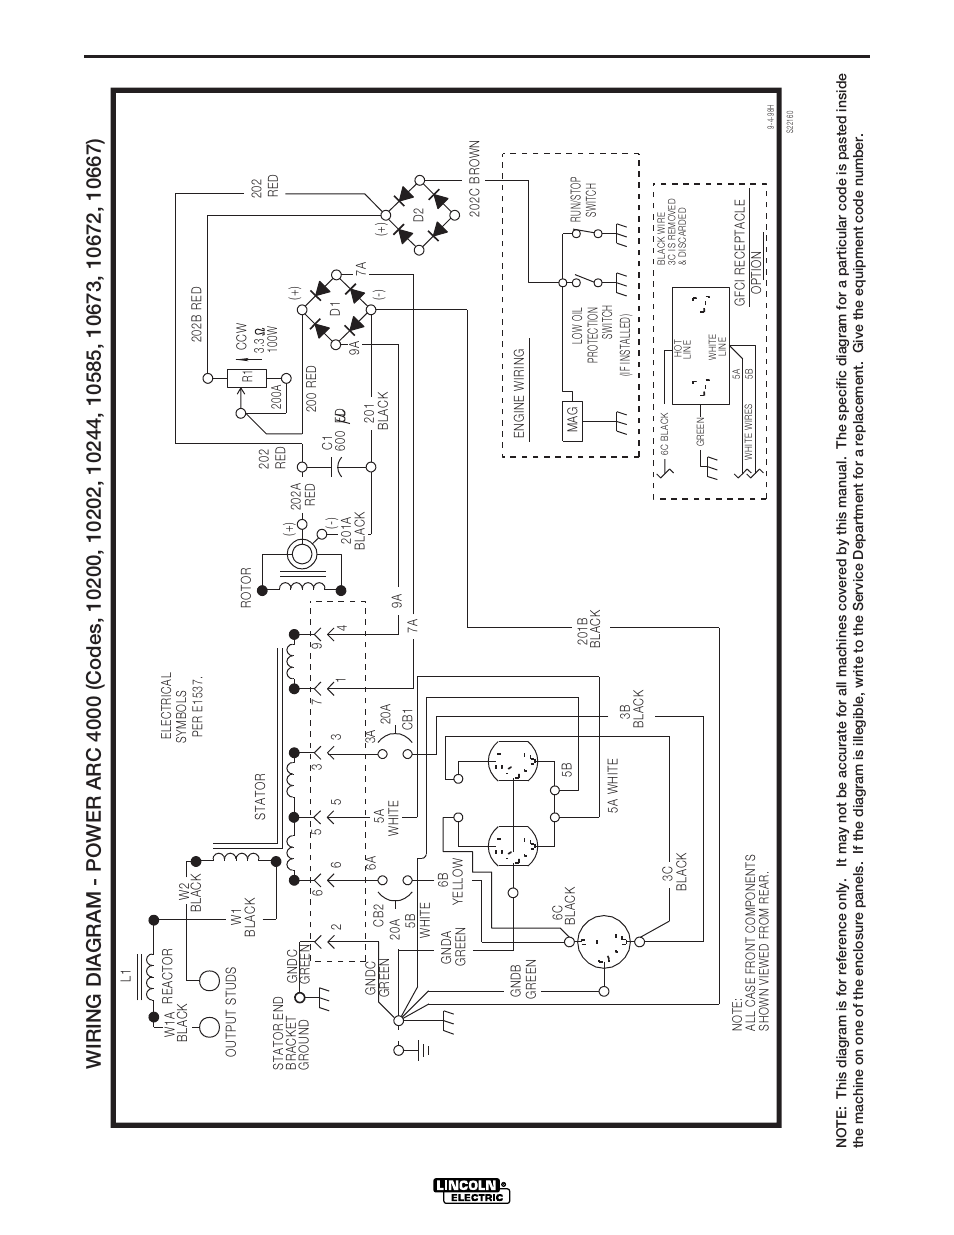 Lincoln Wiring Diagrams Dc 600 Diagram 29 Images Online Welders